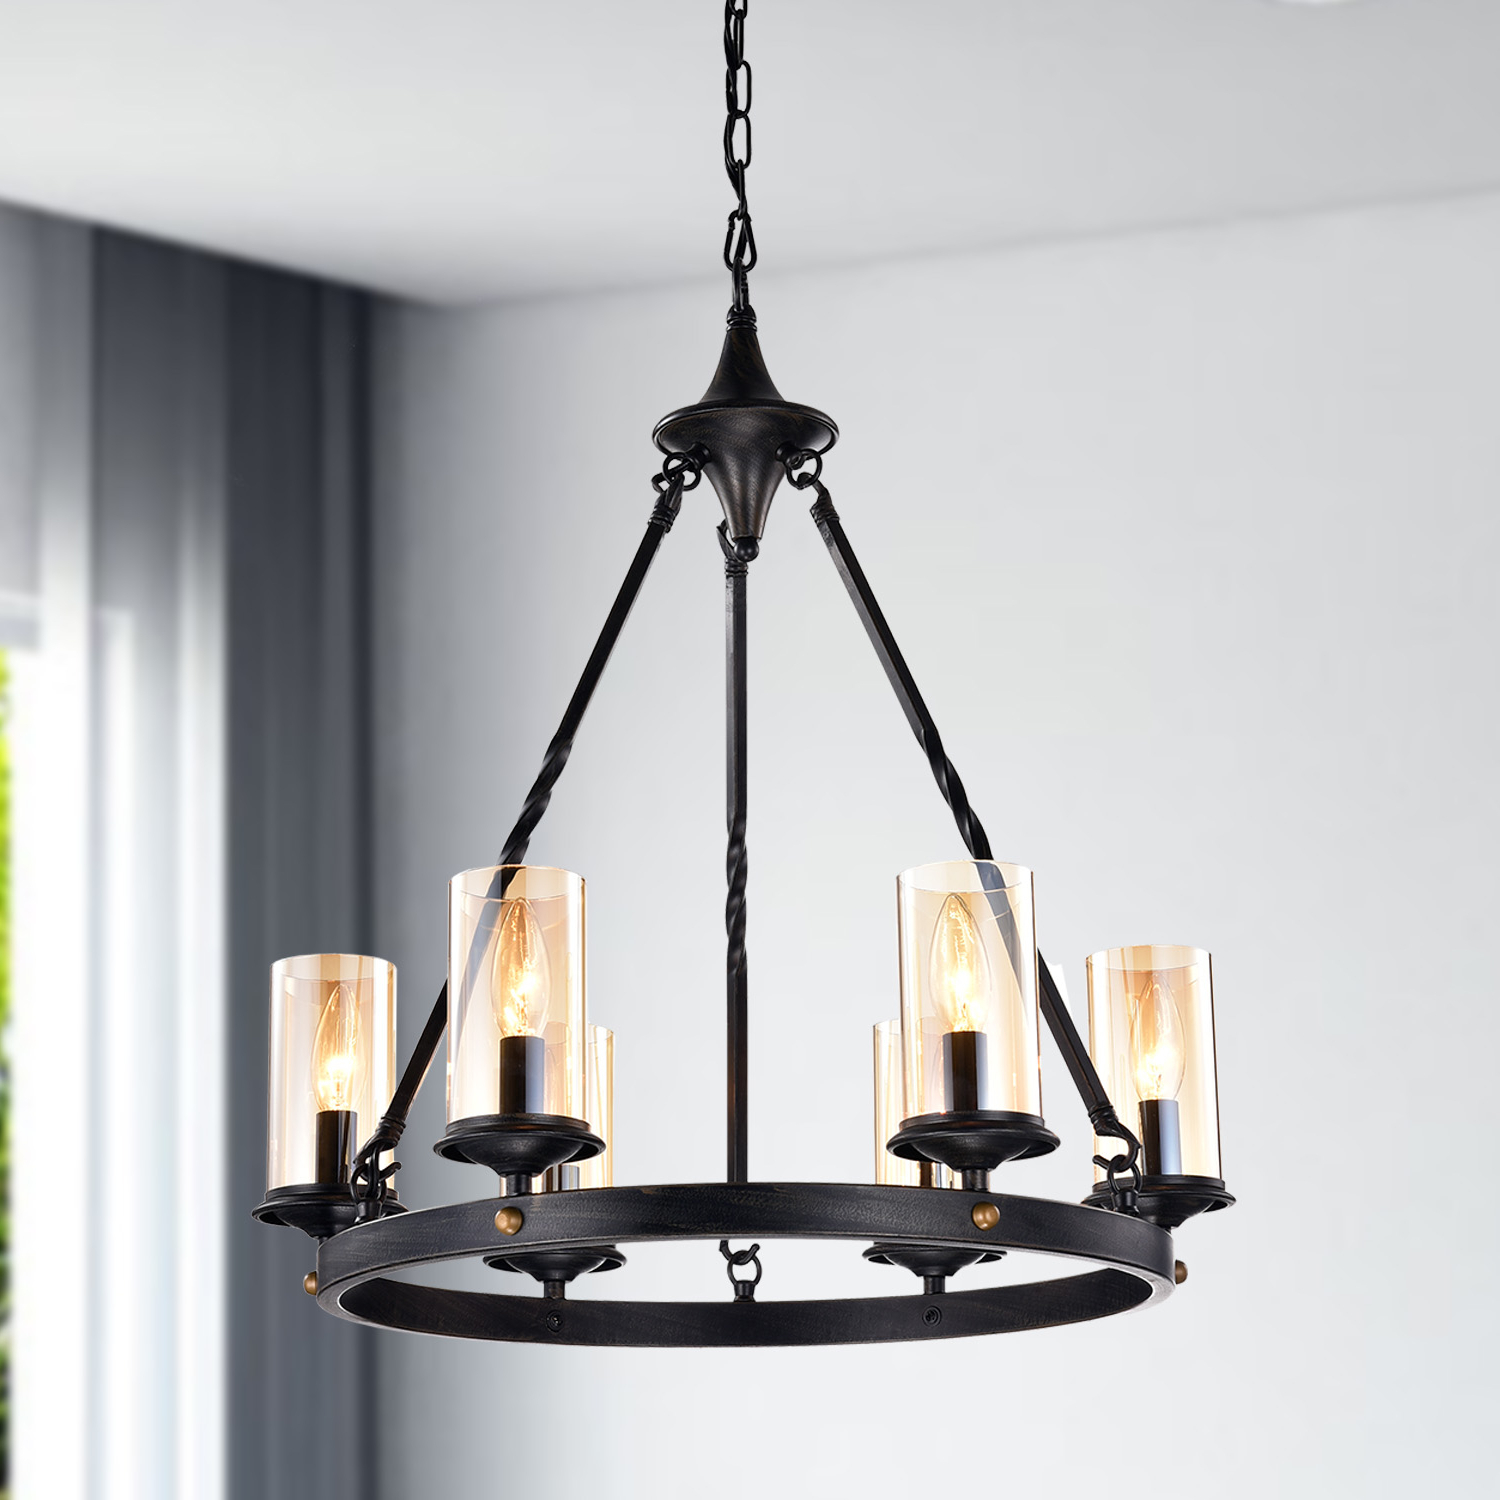 Fashionable Nayen Black 23'' H Wall Lanterns With 6 Light Antique Black Industrial Wheel Chandelier With (View 4 of 15)